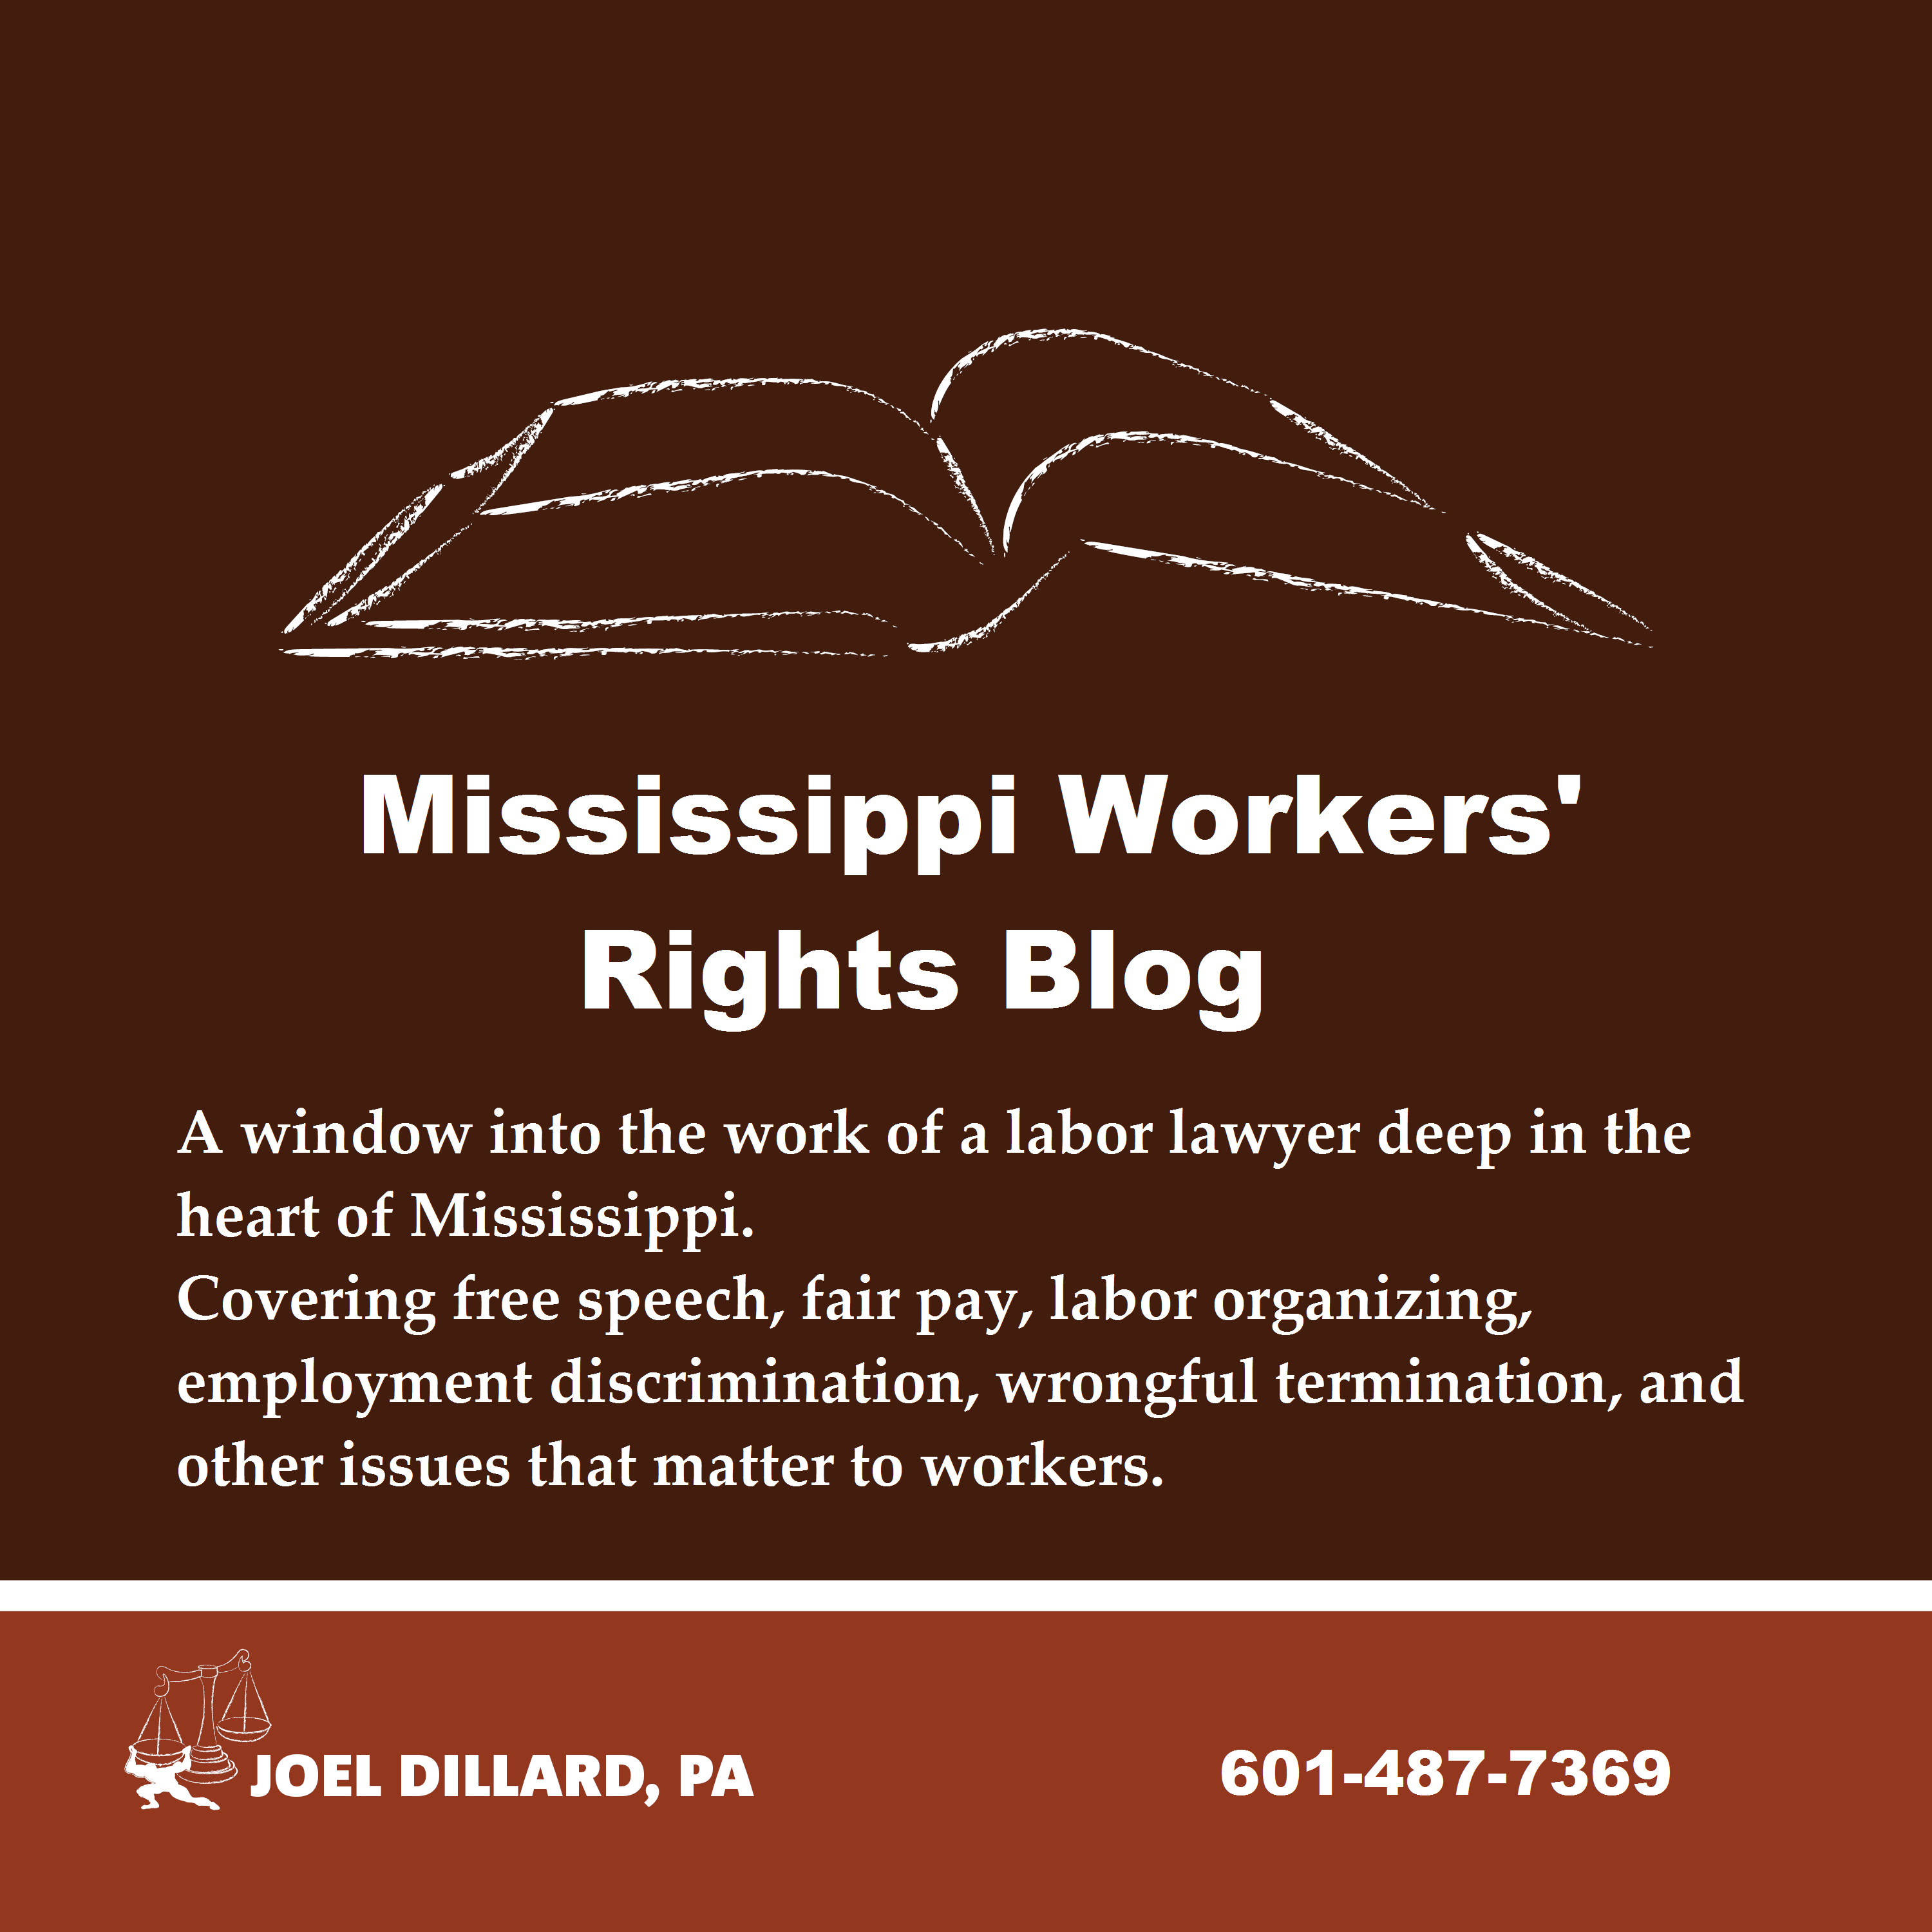 Mississippi Workers' Rights Blog